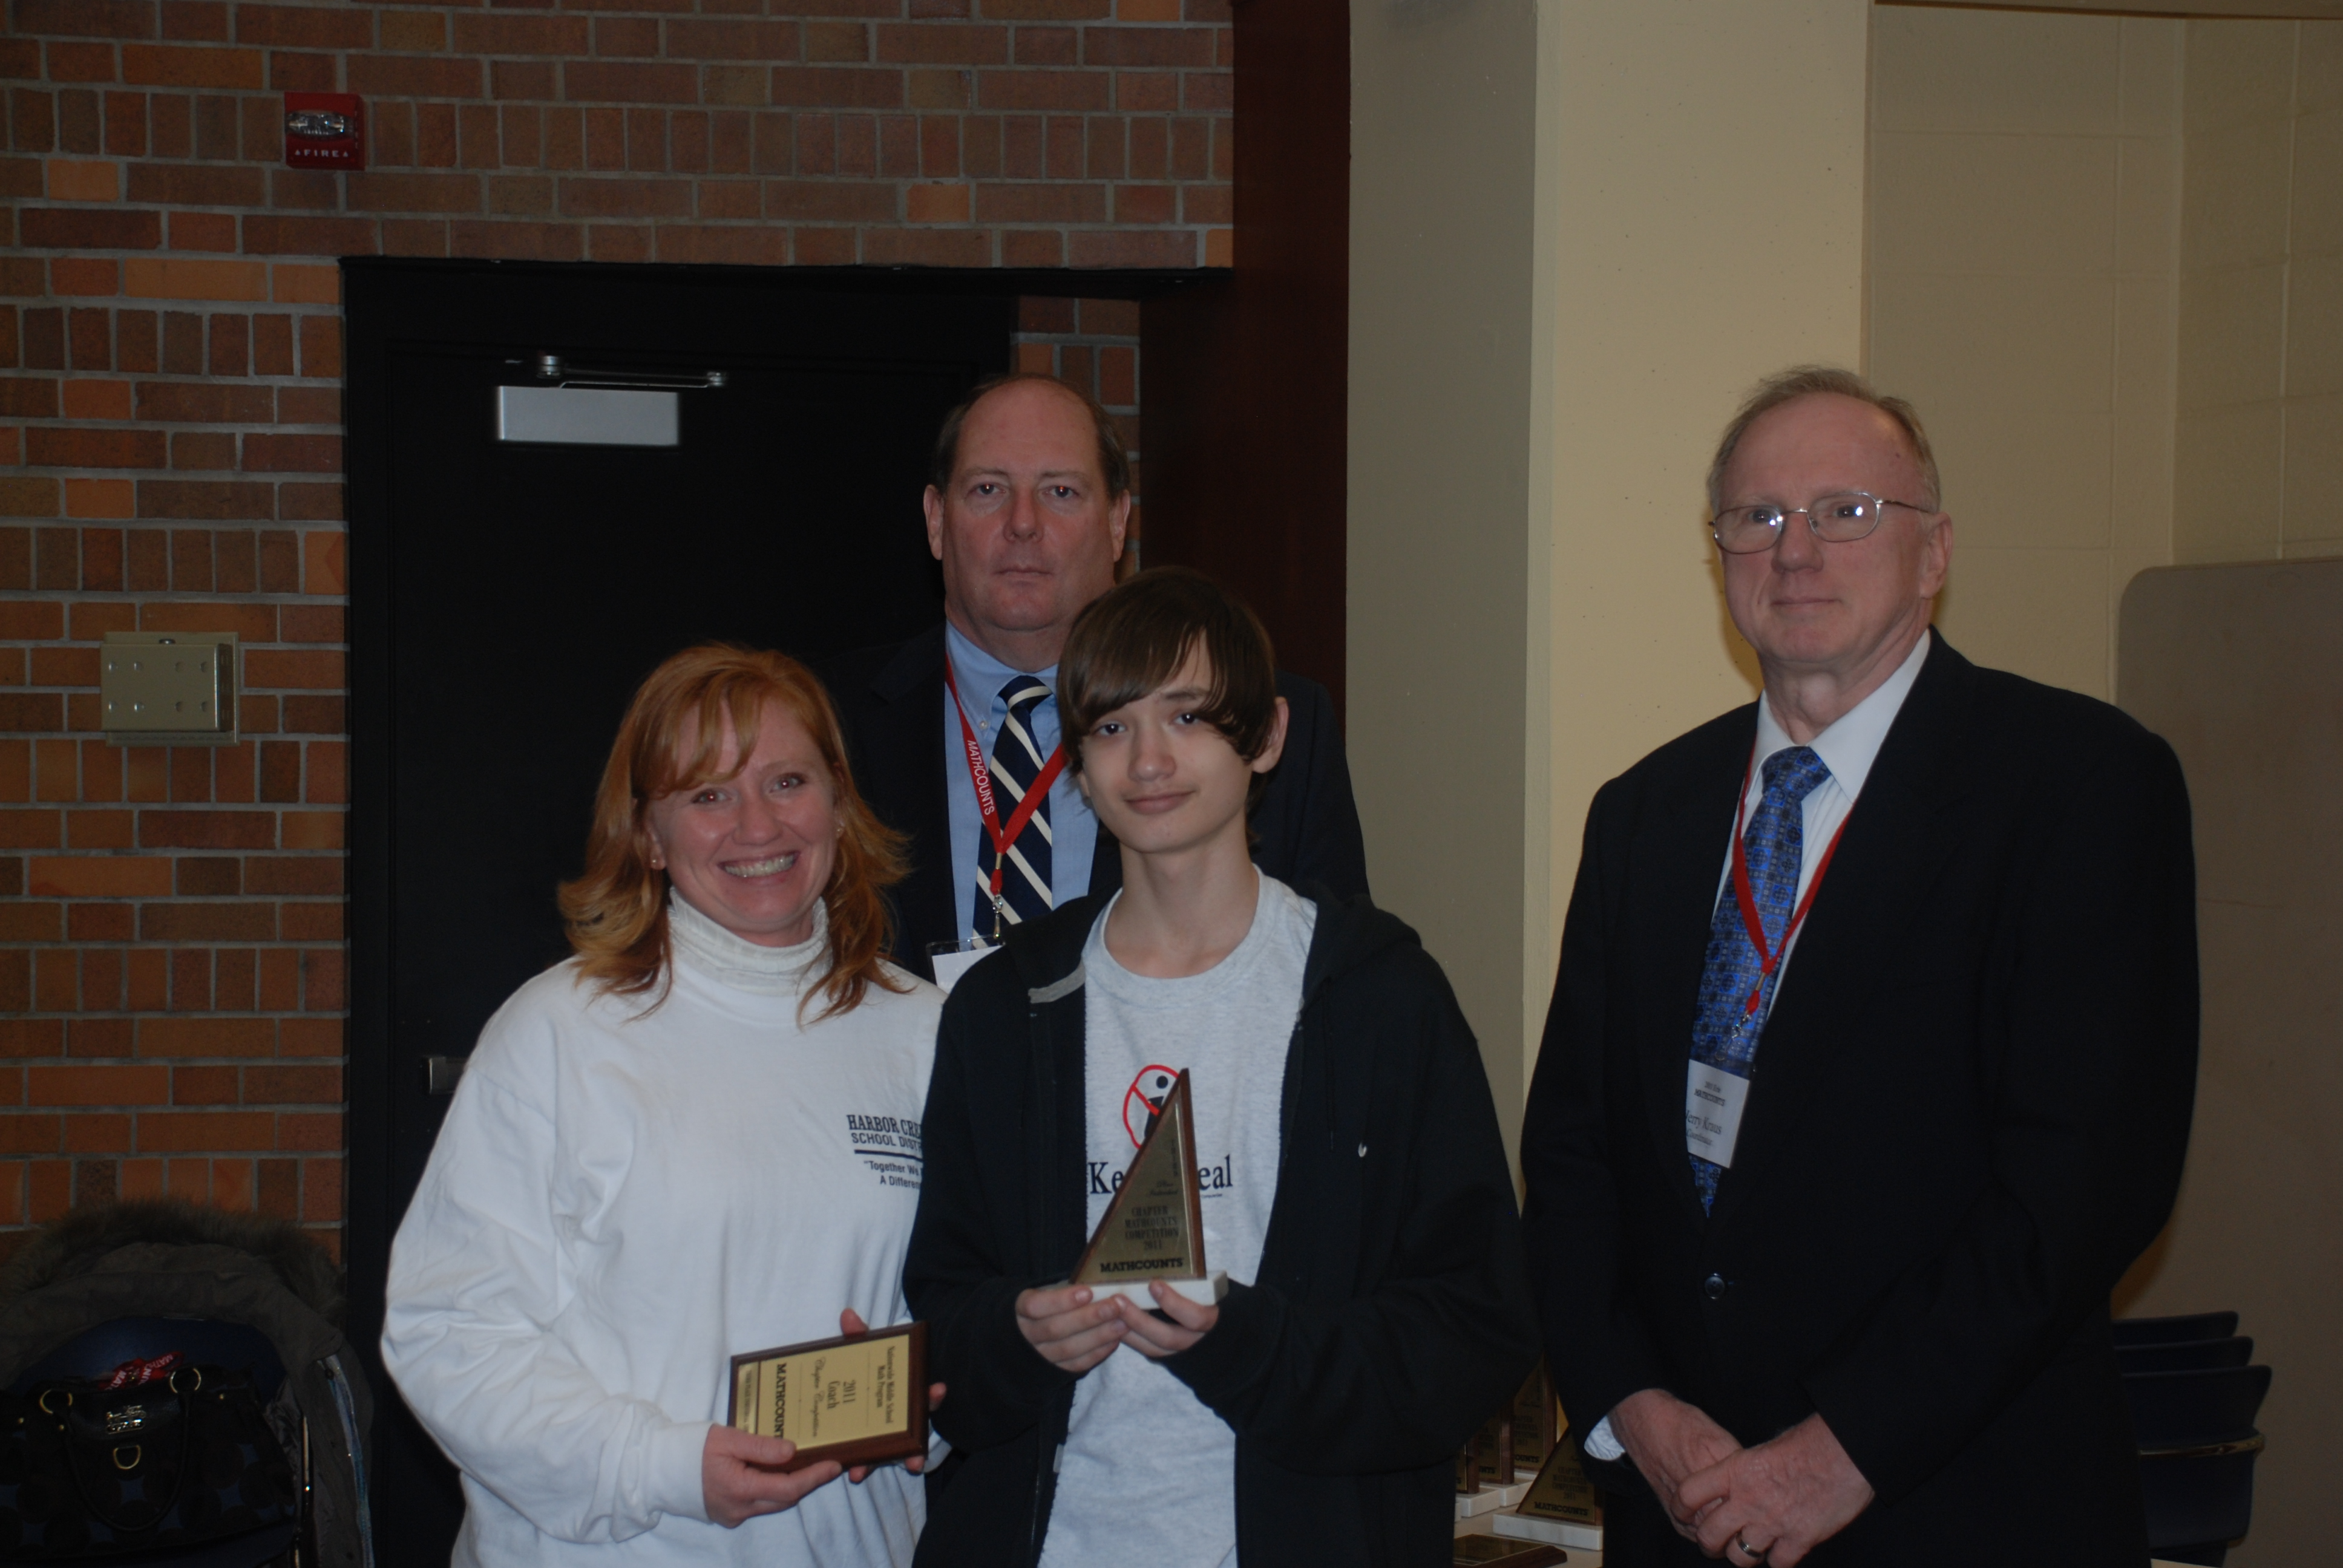 2011 3rd Place Individual